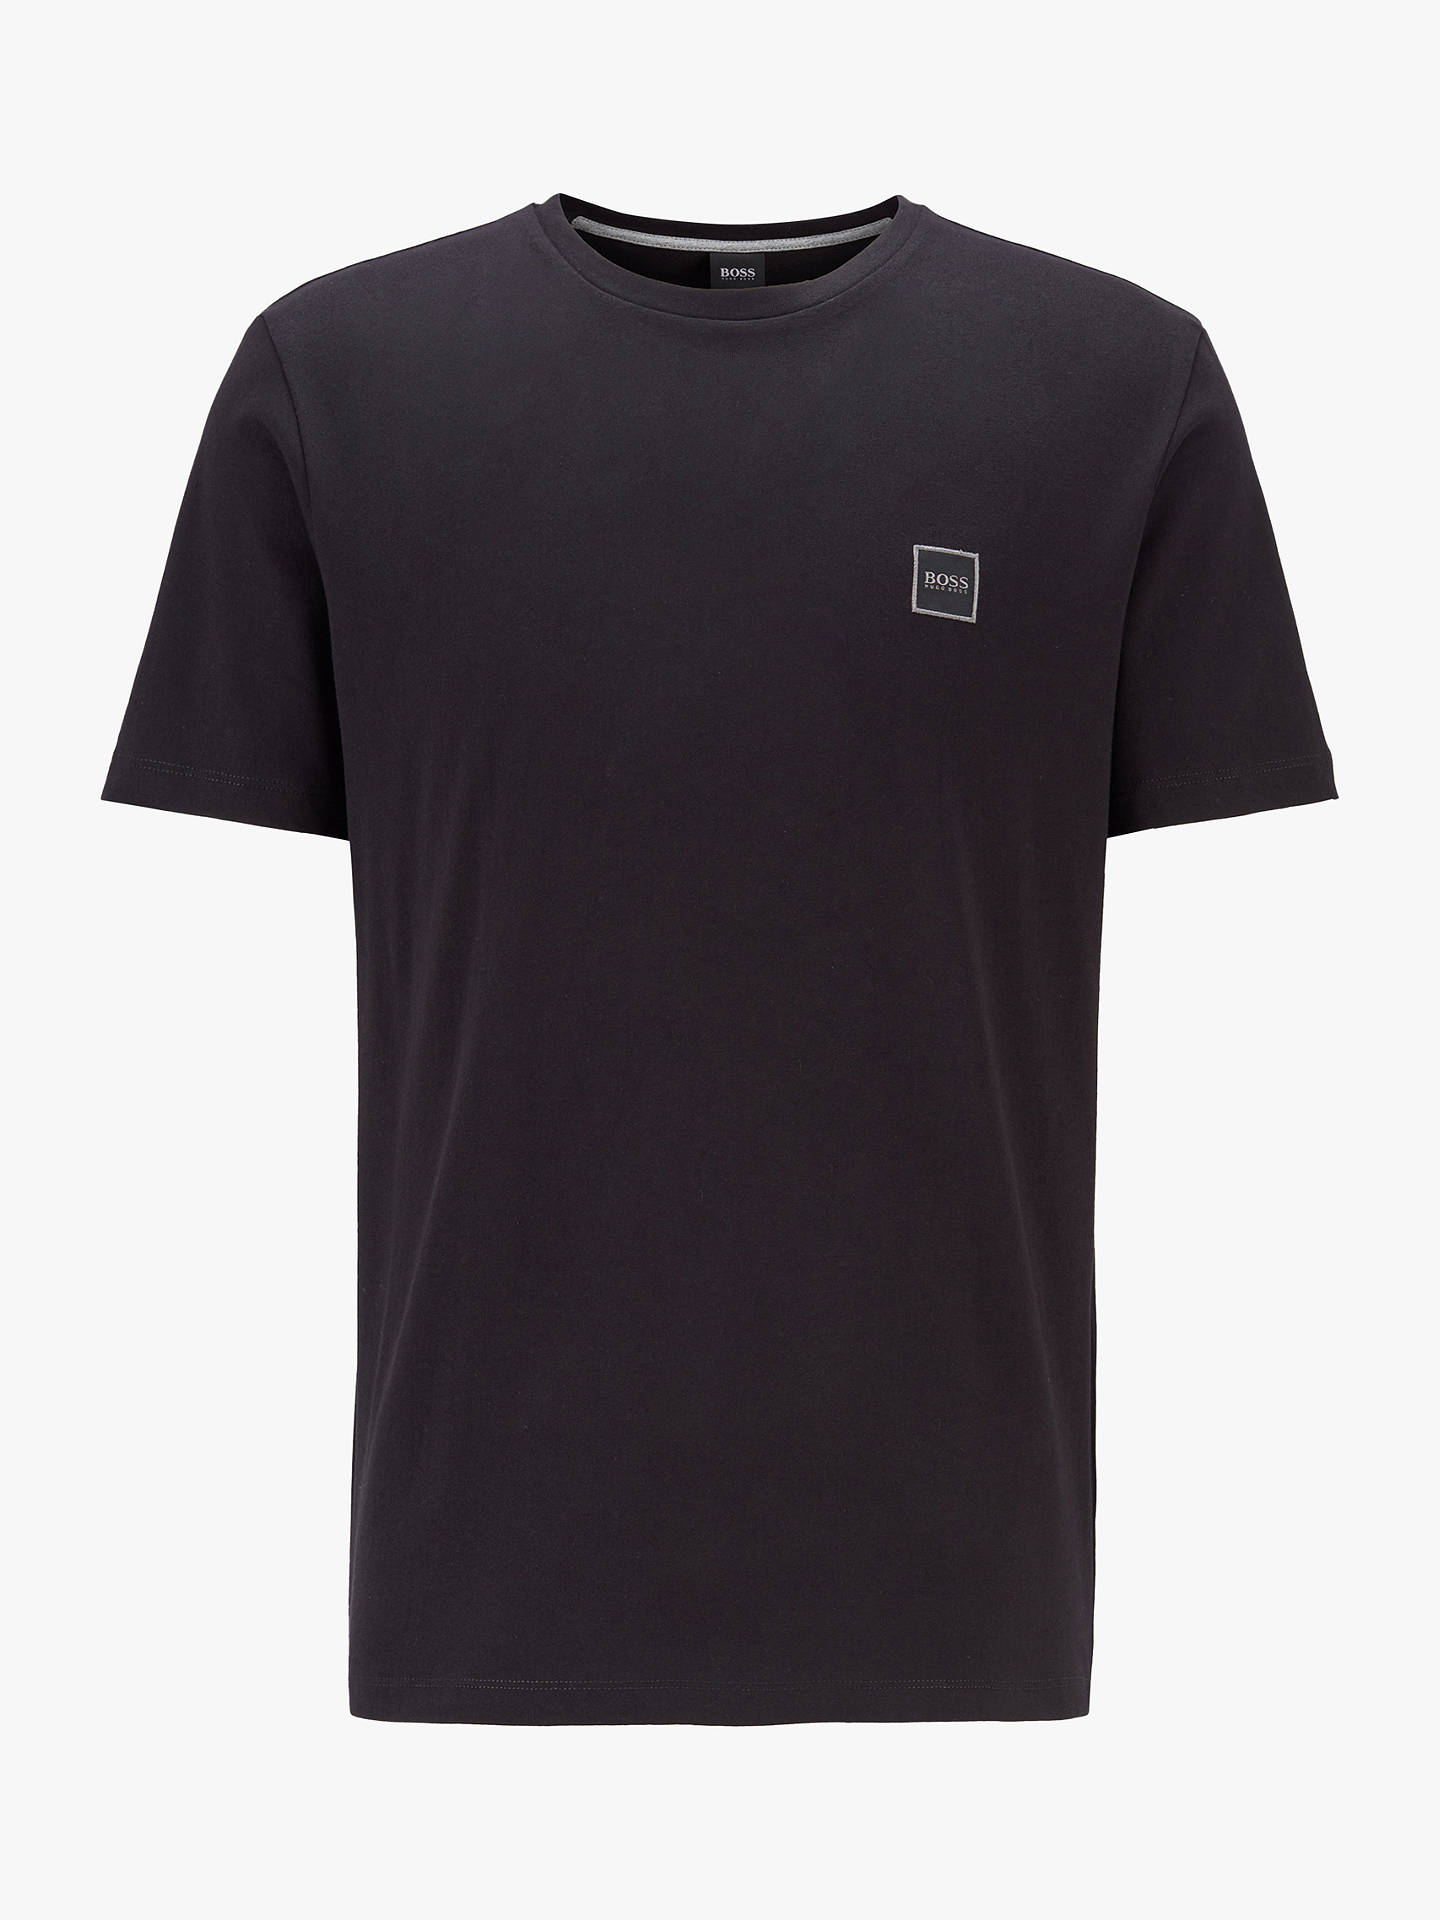 BuyBOSS Tales Short Sleeve T-Shirt, Black, S Online at johnlewis.com